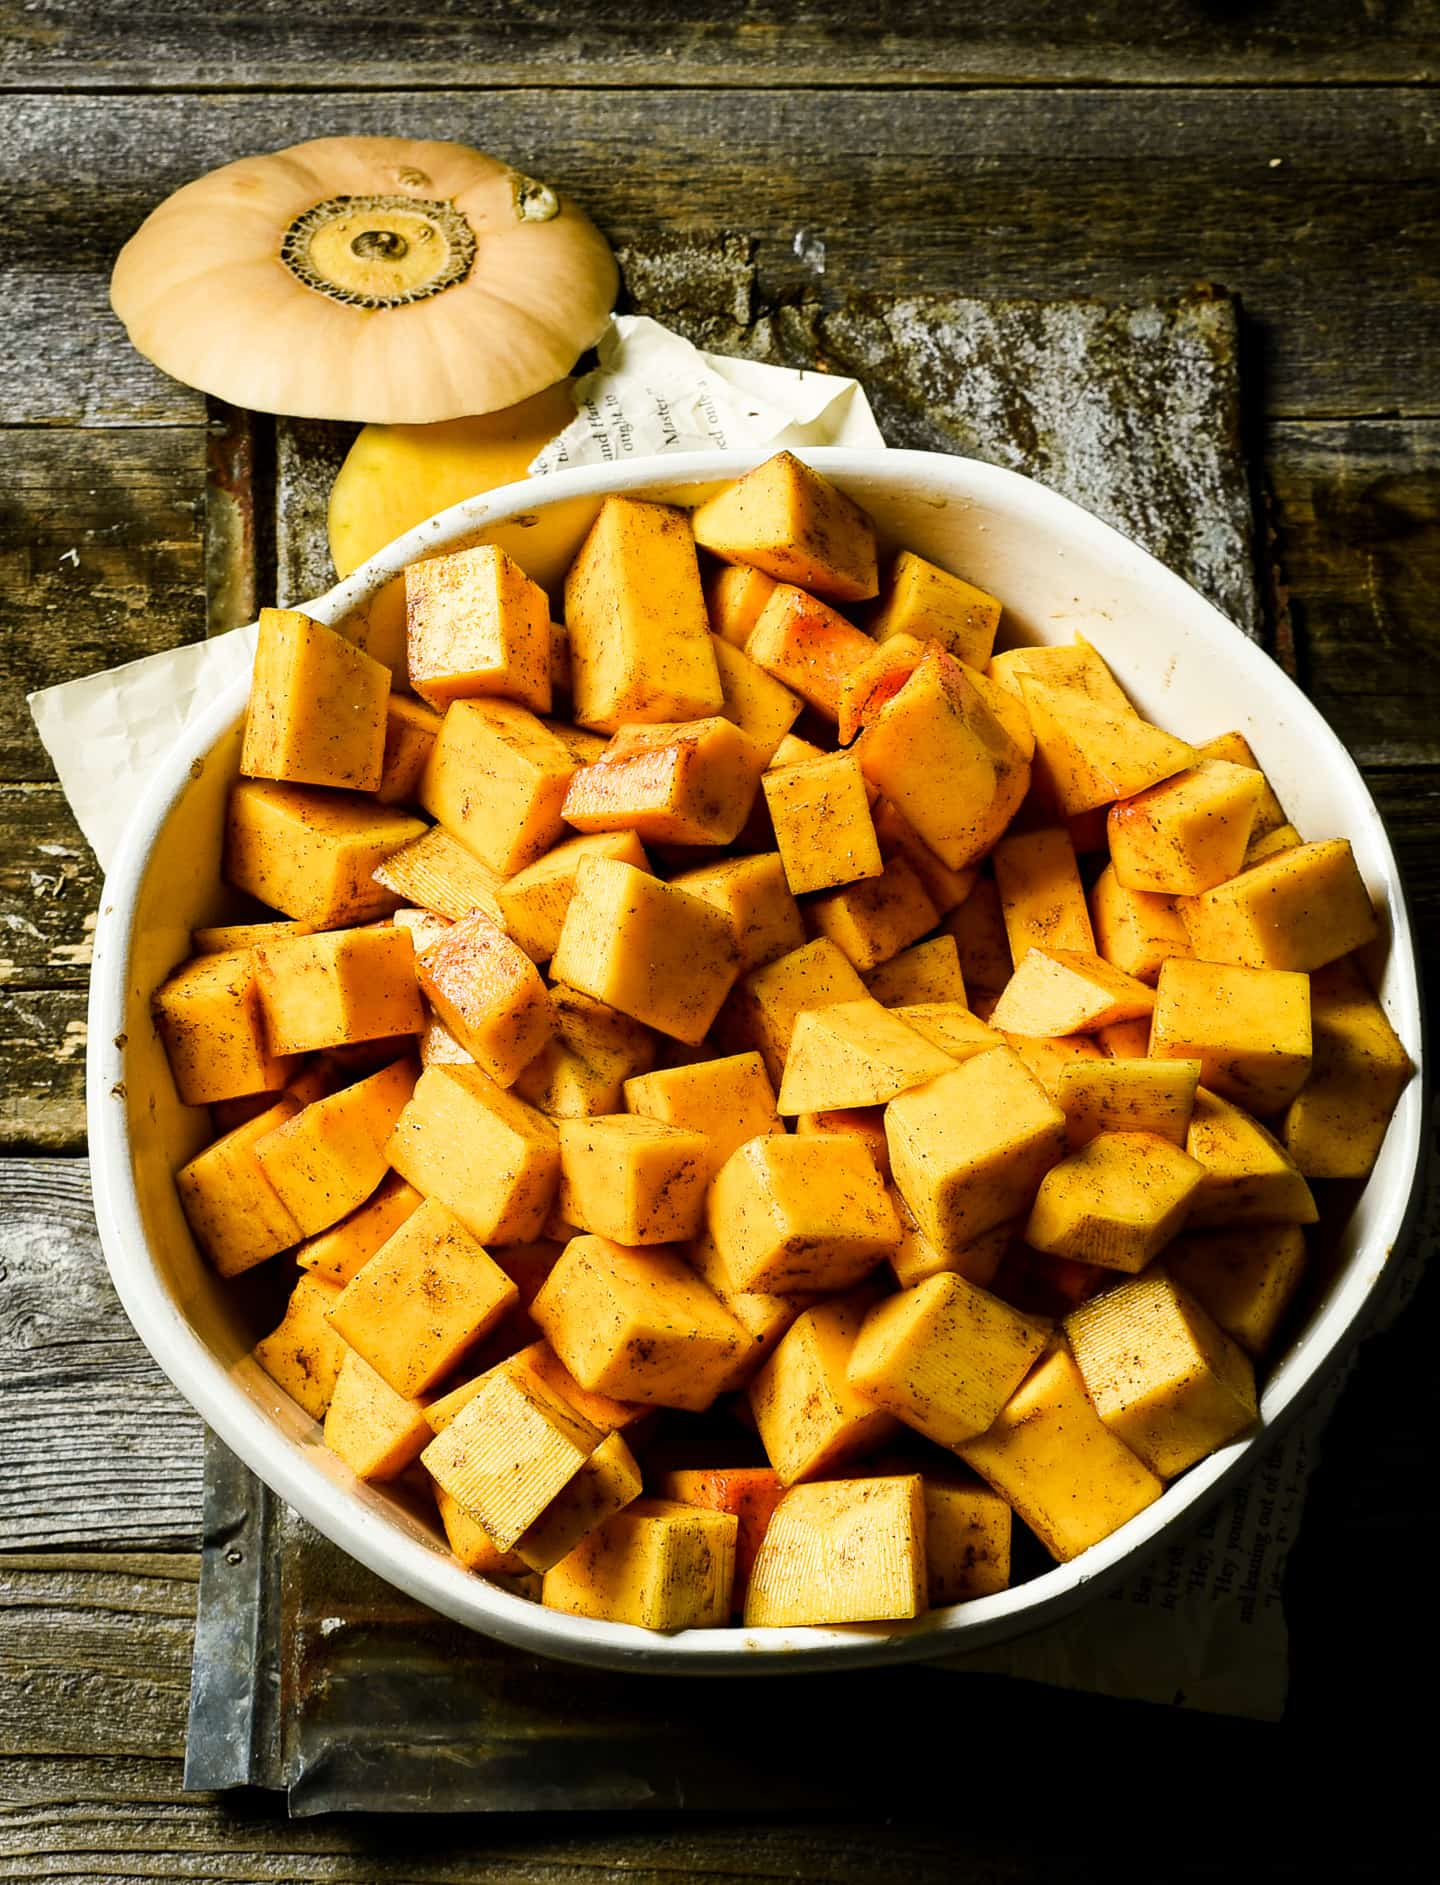 Butternut squash cubes in mixing bowl.